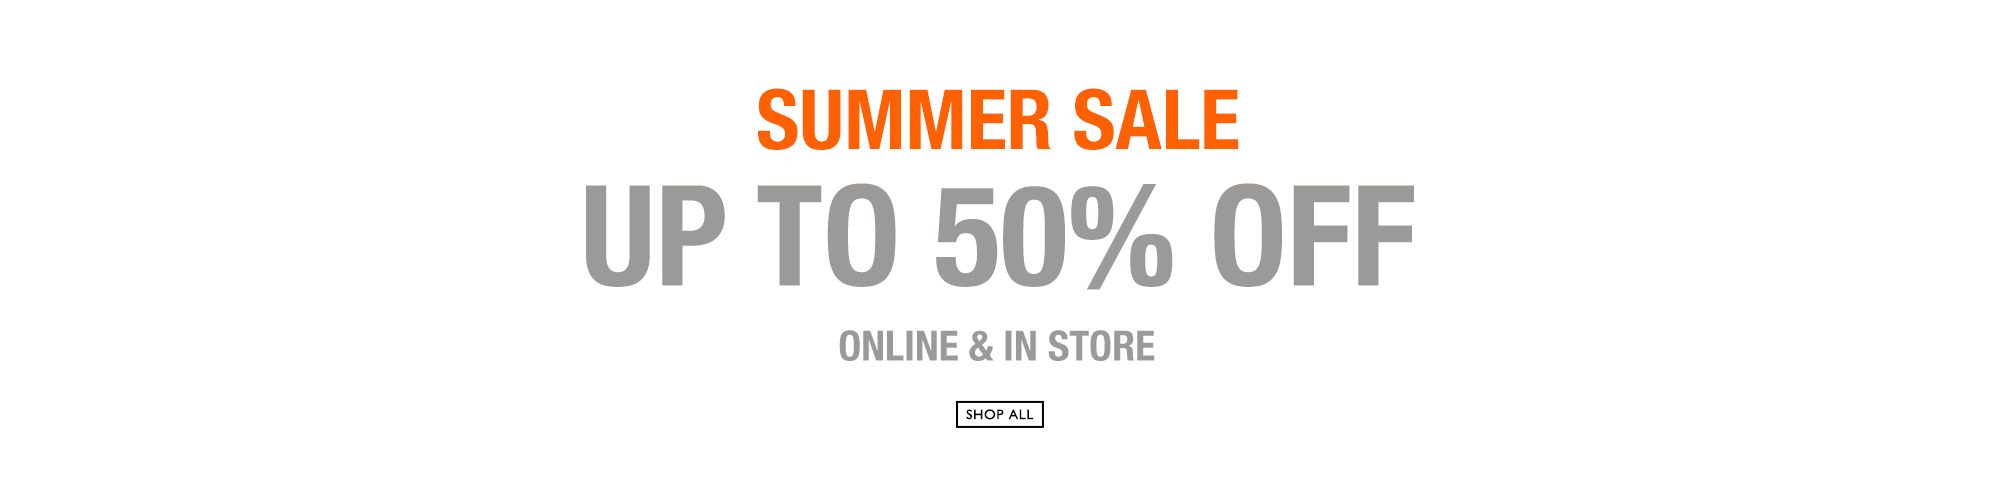 Topman: Sale up to 50% off accessories and clothing